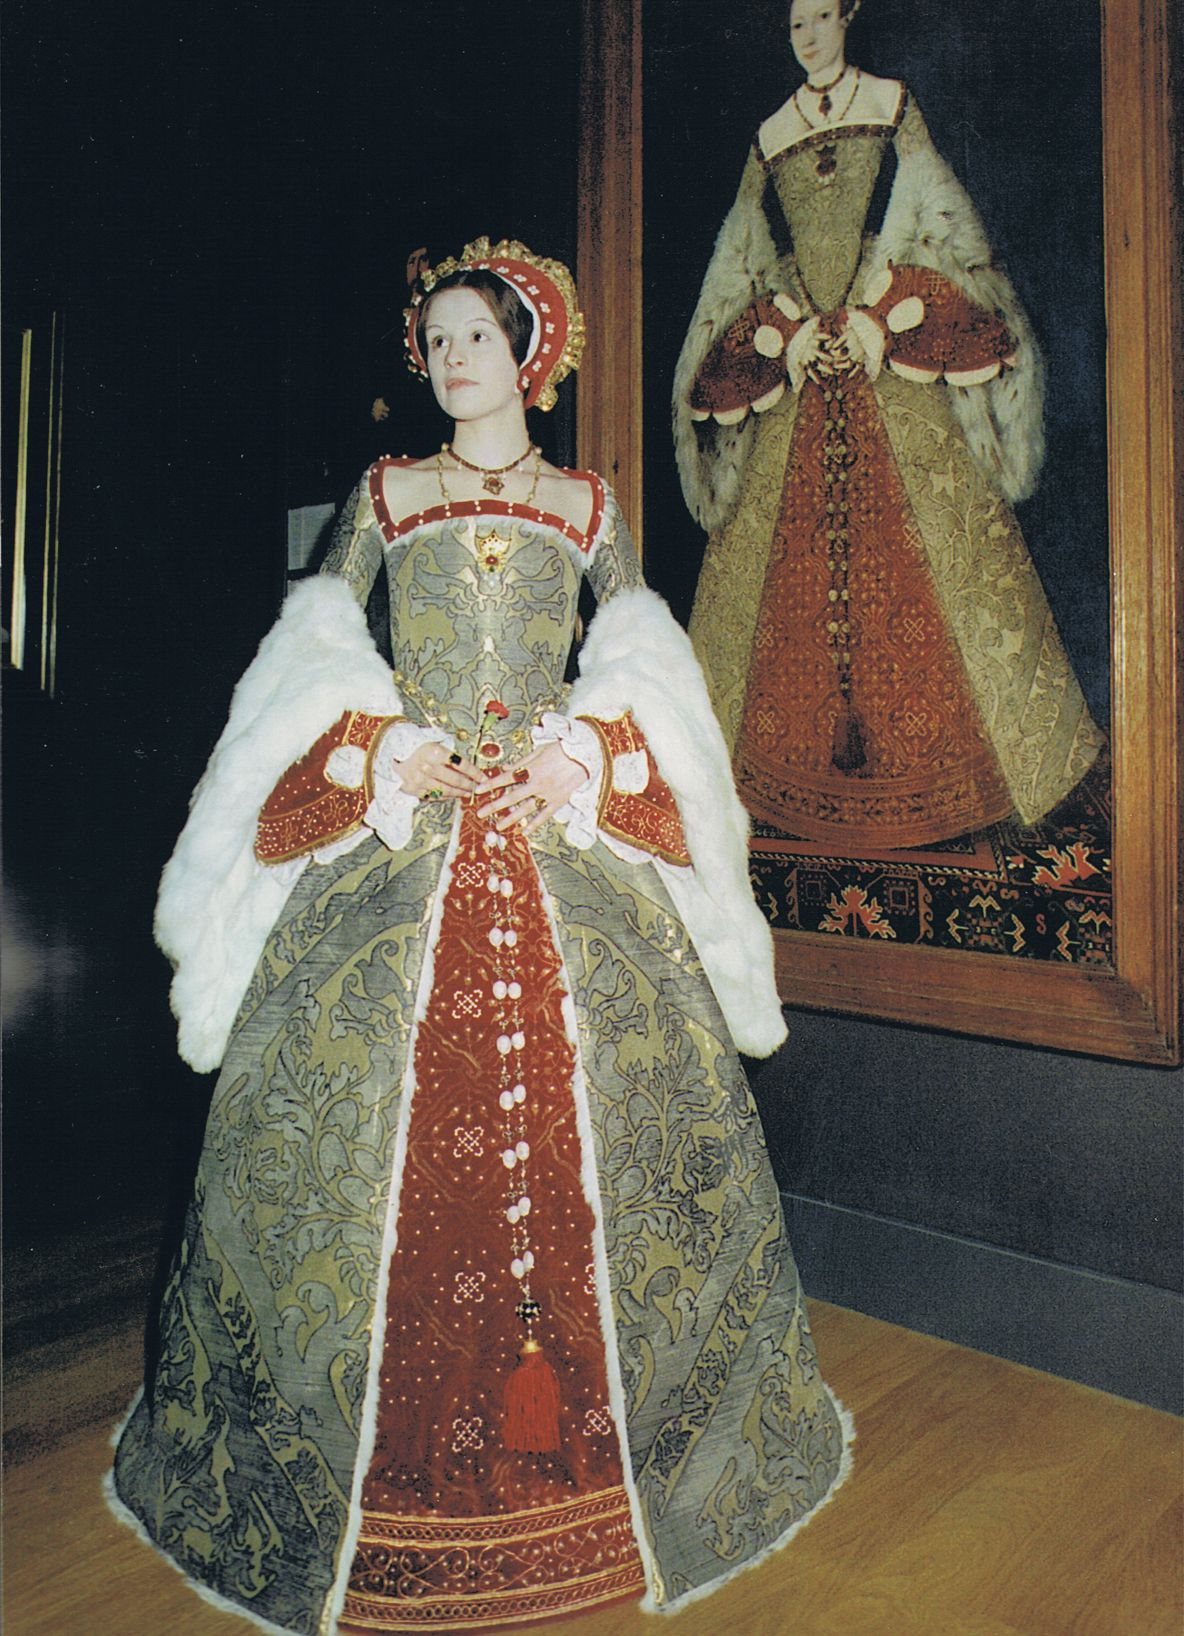 CATHERINE PARR costume made for the 'Galleries Project' at the Wimbledon School of Art 1999. Part of a final degree show in Costume Interpretation BA by ANNIKA JOAN CASWELL | http://bit.ly/1LfriNL